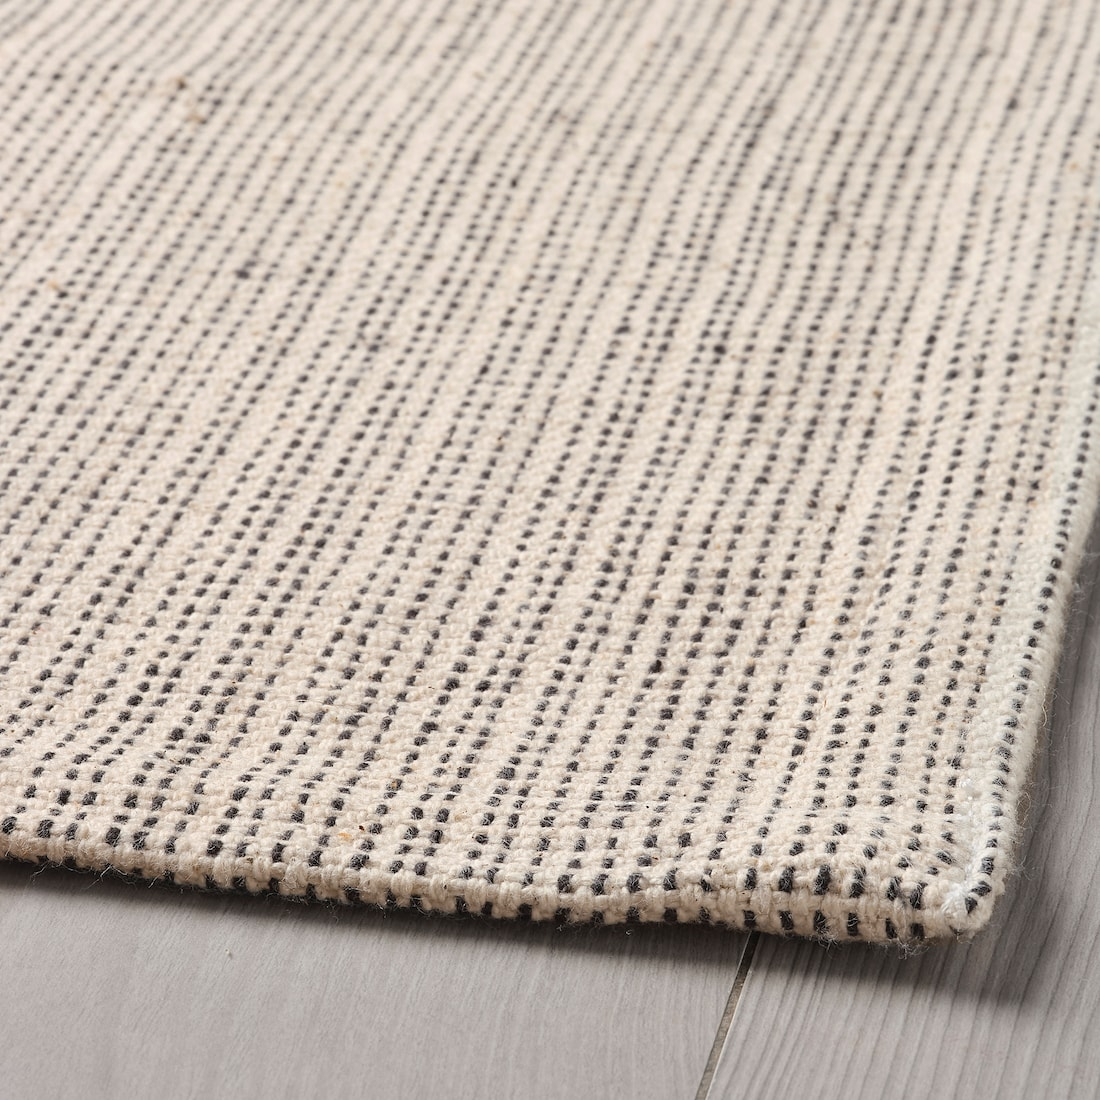 tiphede-rug-flatwoven-natural-off-white_